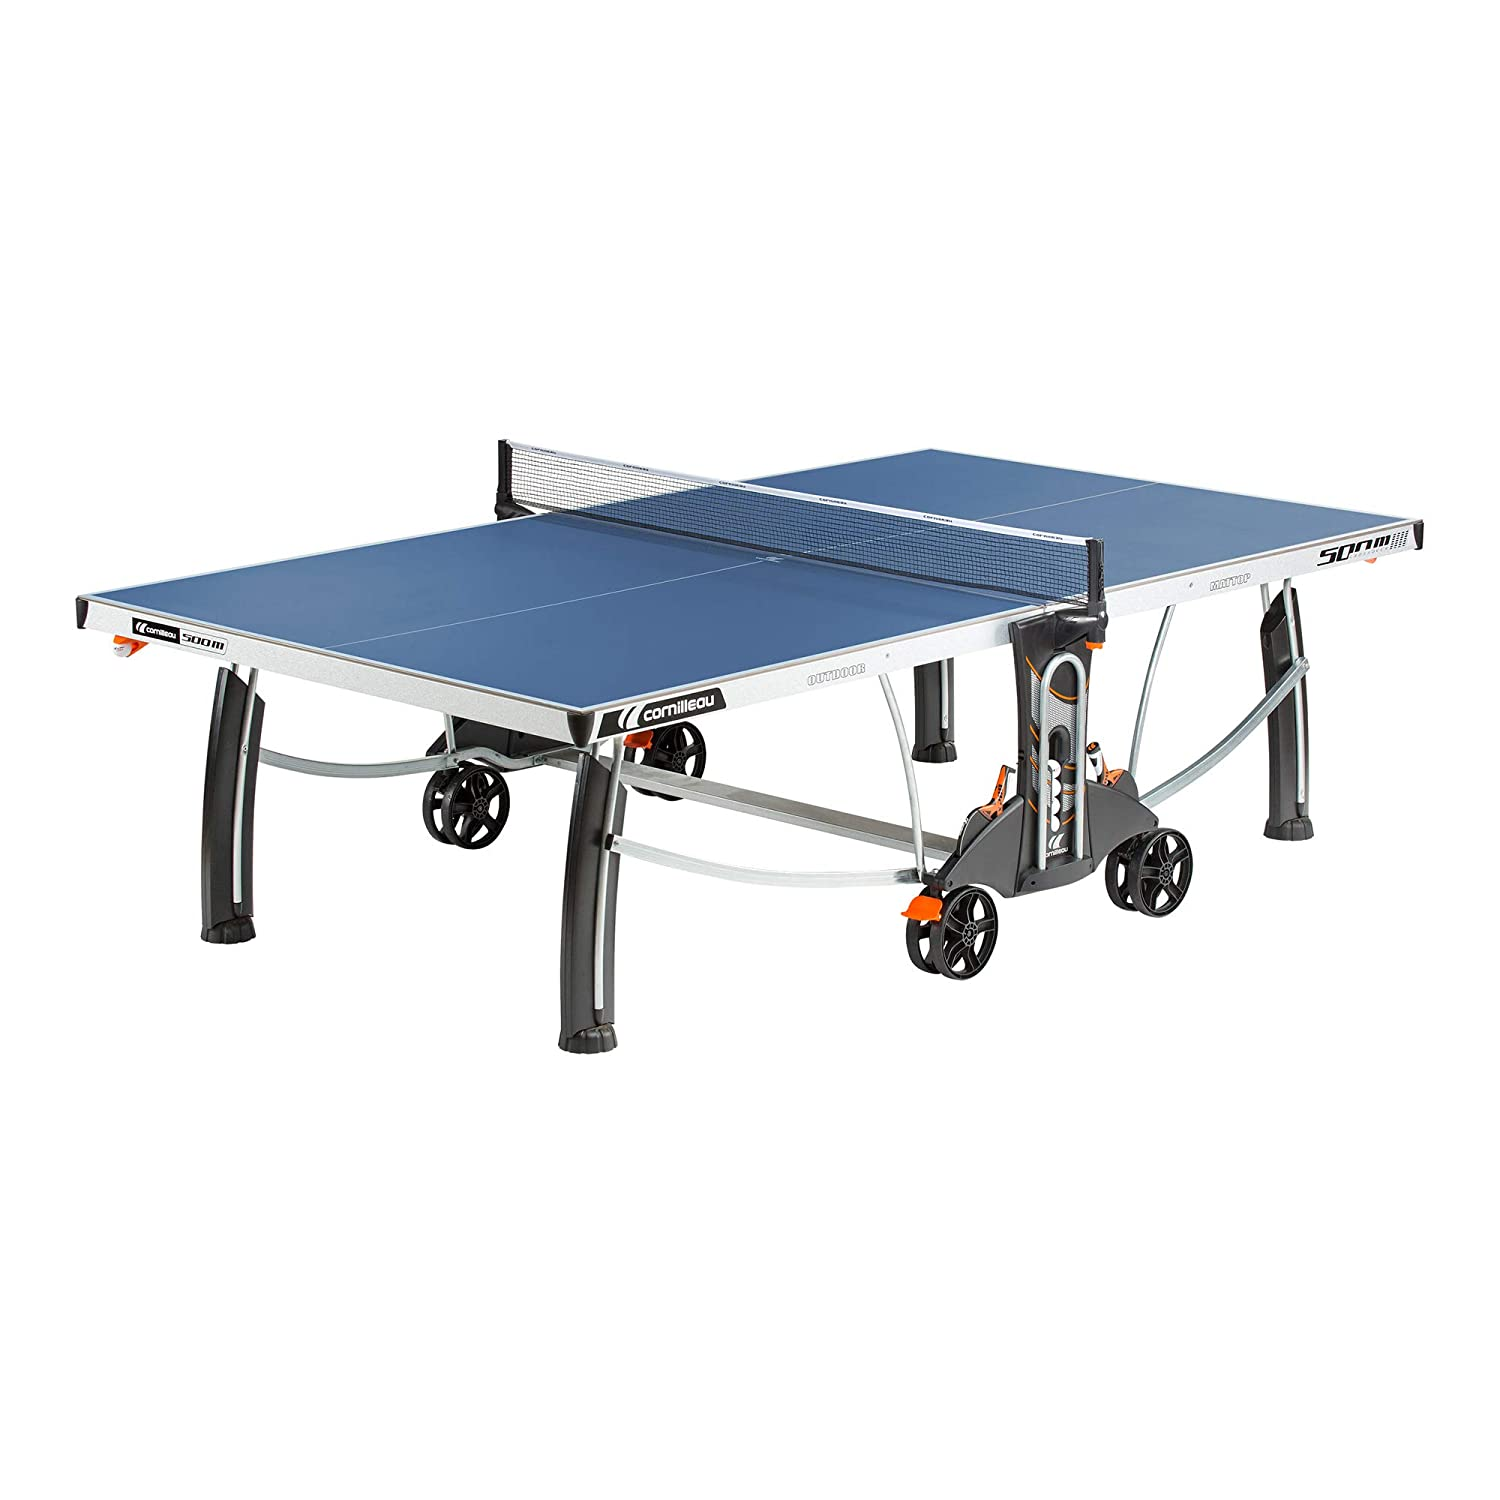 JCORNILLEAU 500M Crossover Outdoor table